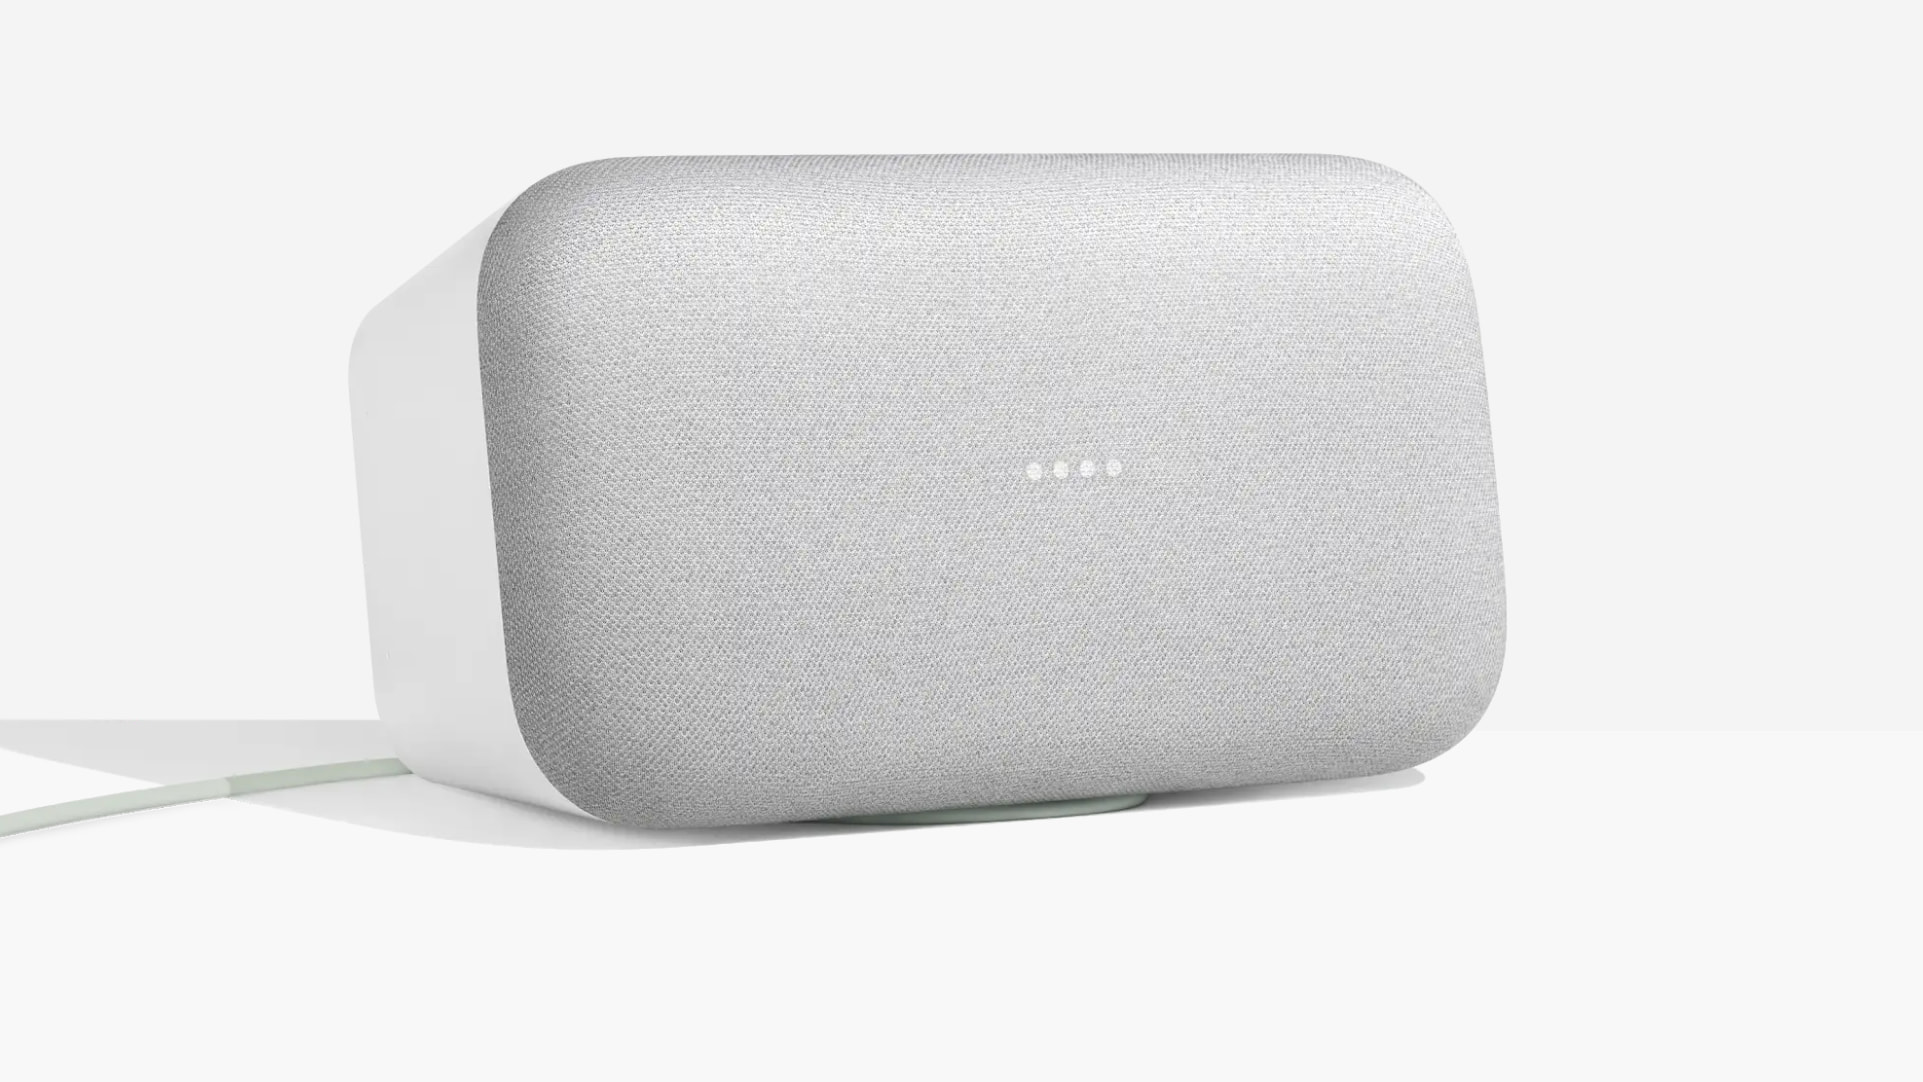 The Google Home Max is back in stock and too cheap to ignore